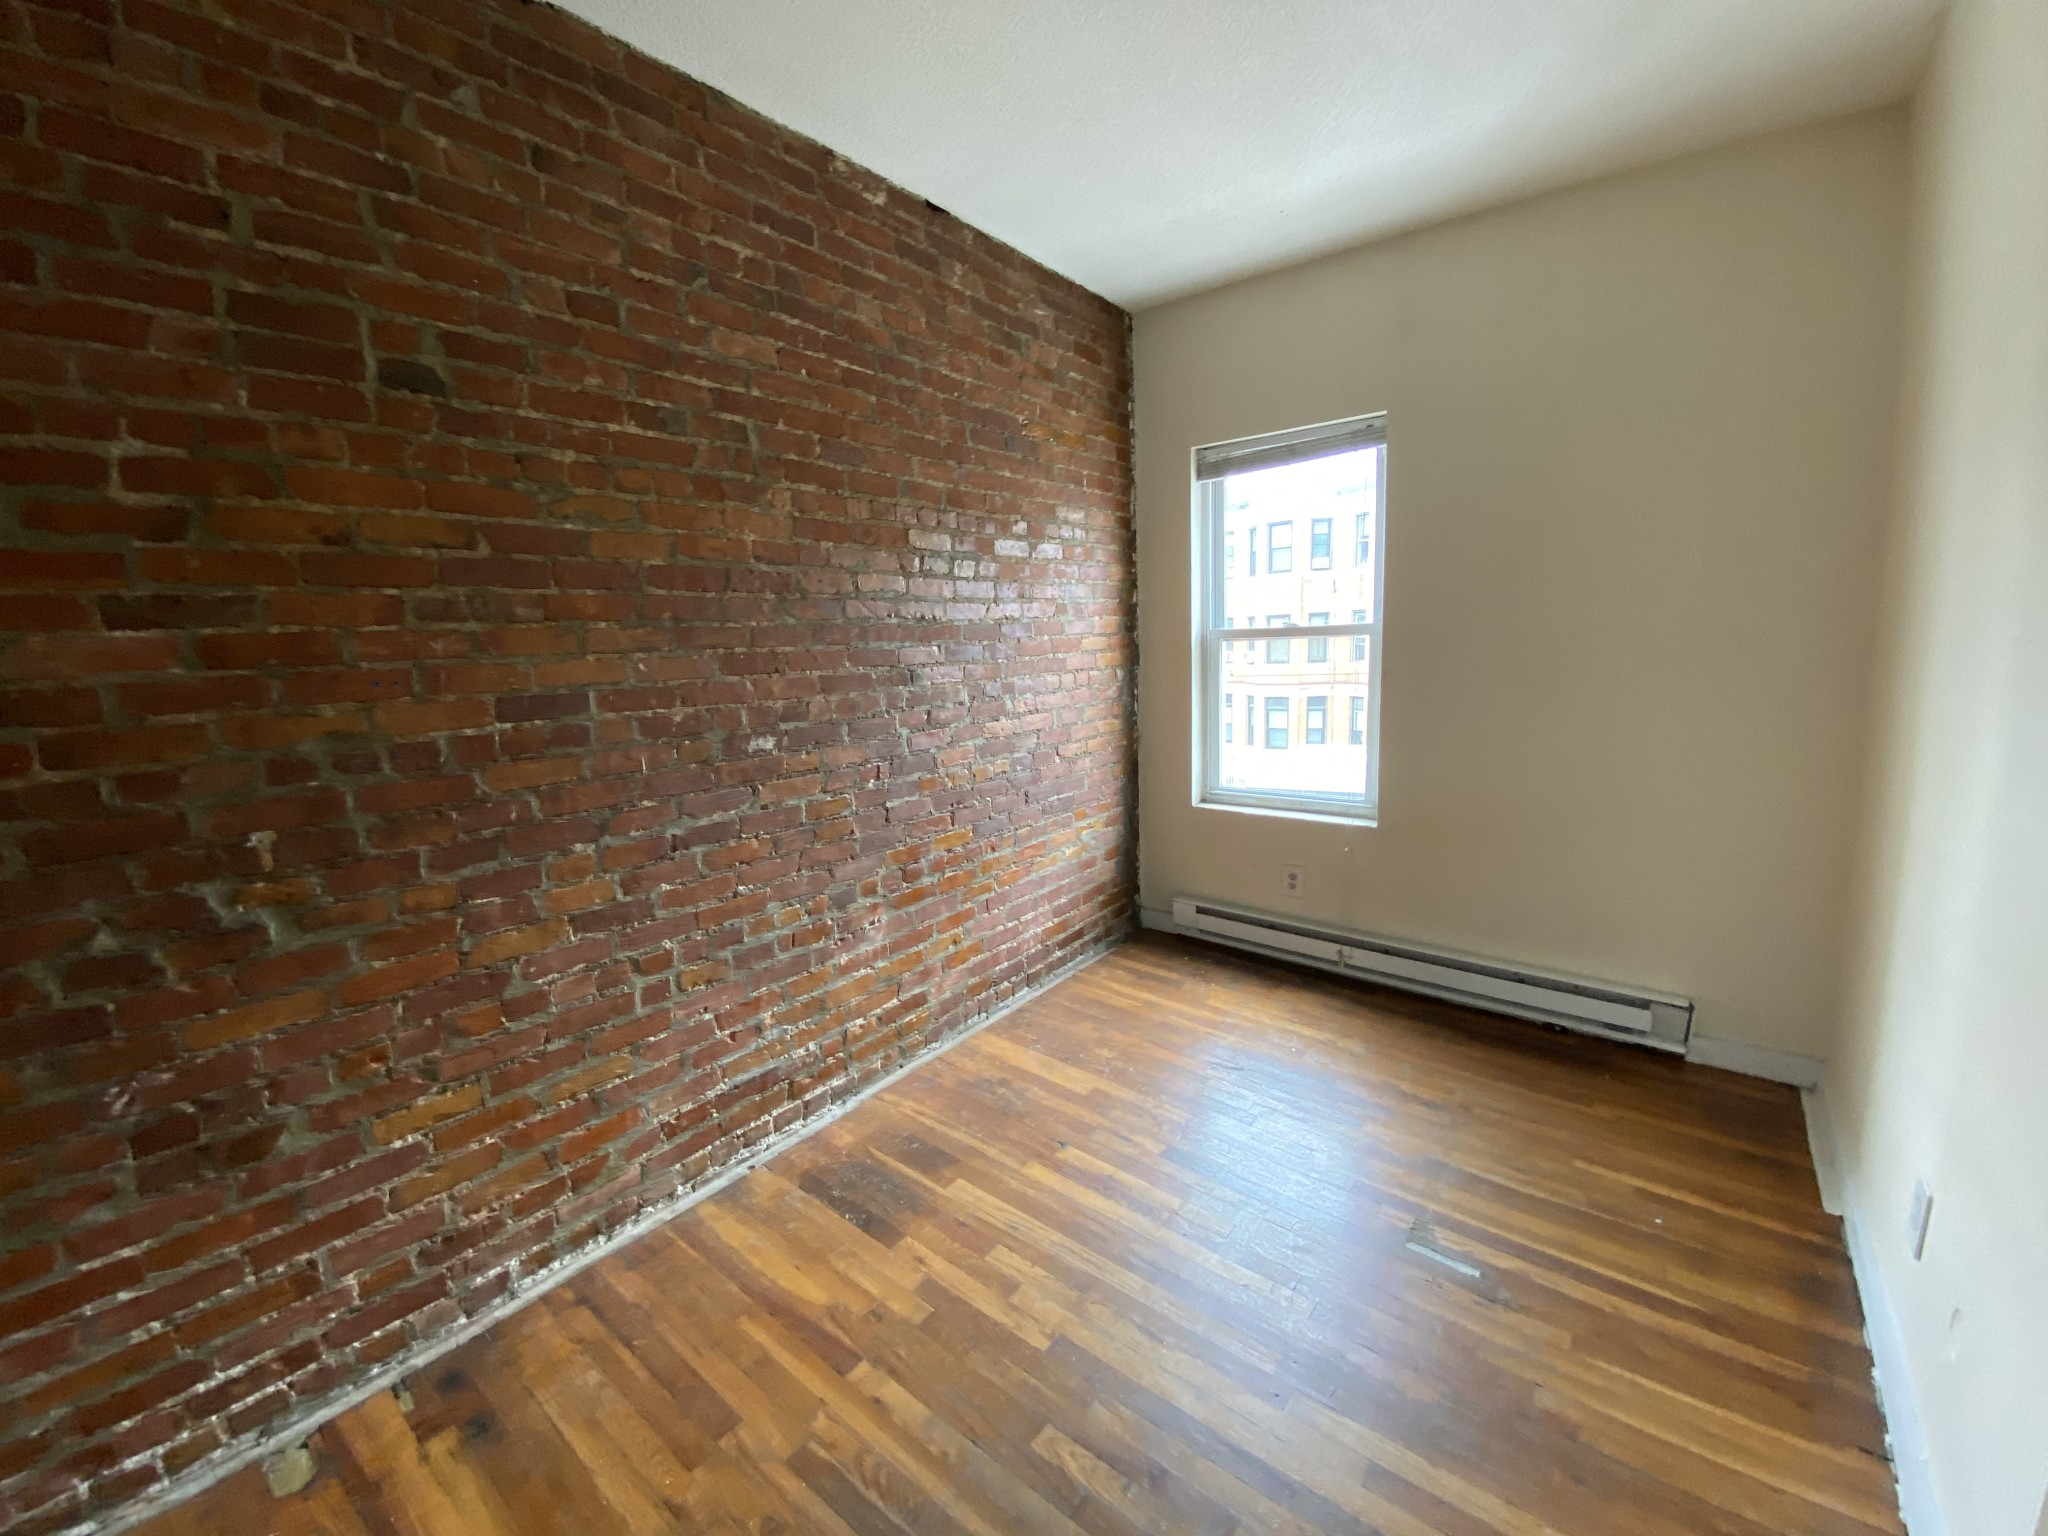 2 Beds, 1 Bath apartment in Boston, Mission Hill for $1,995